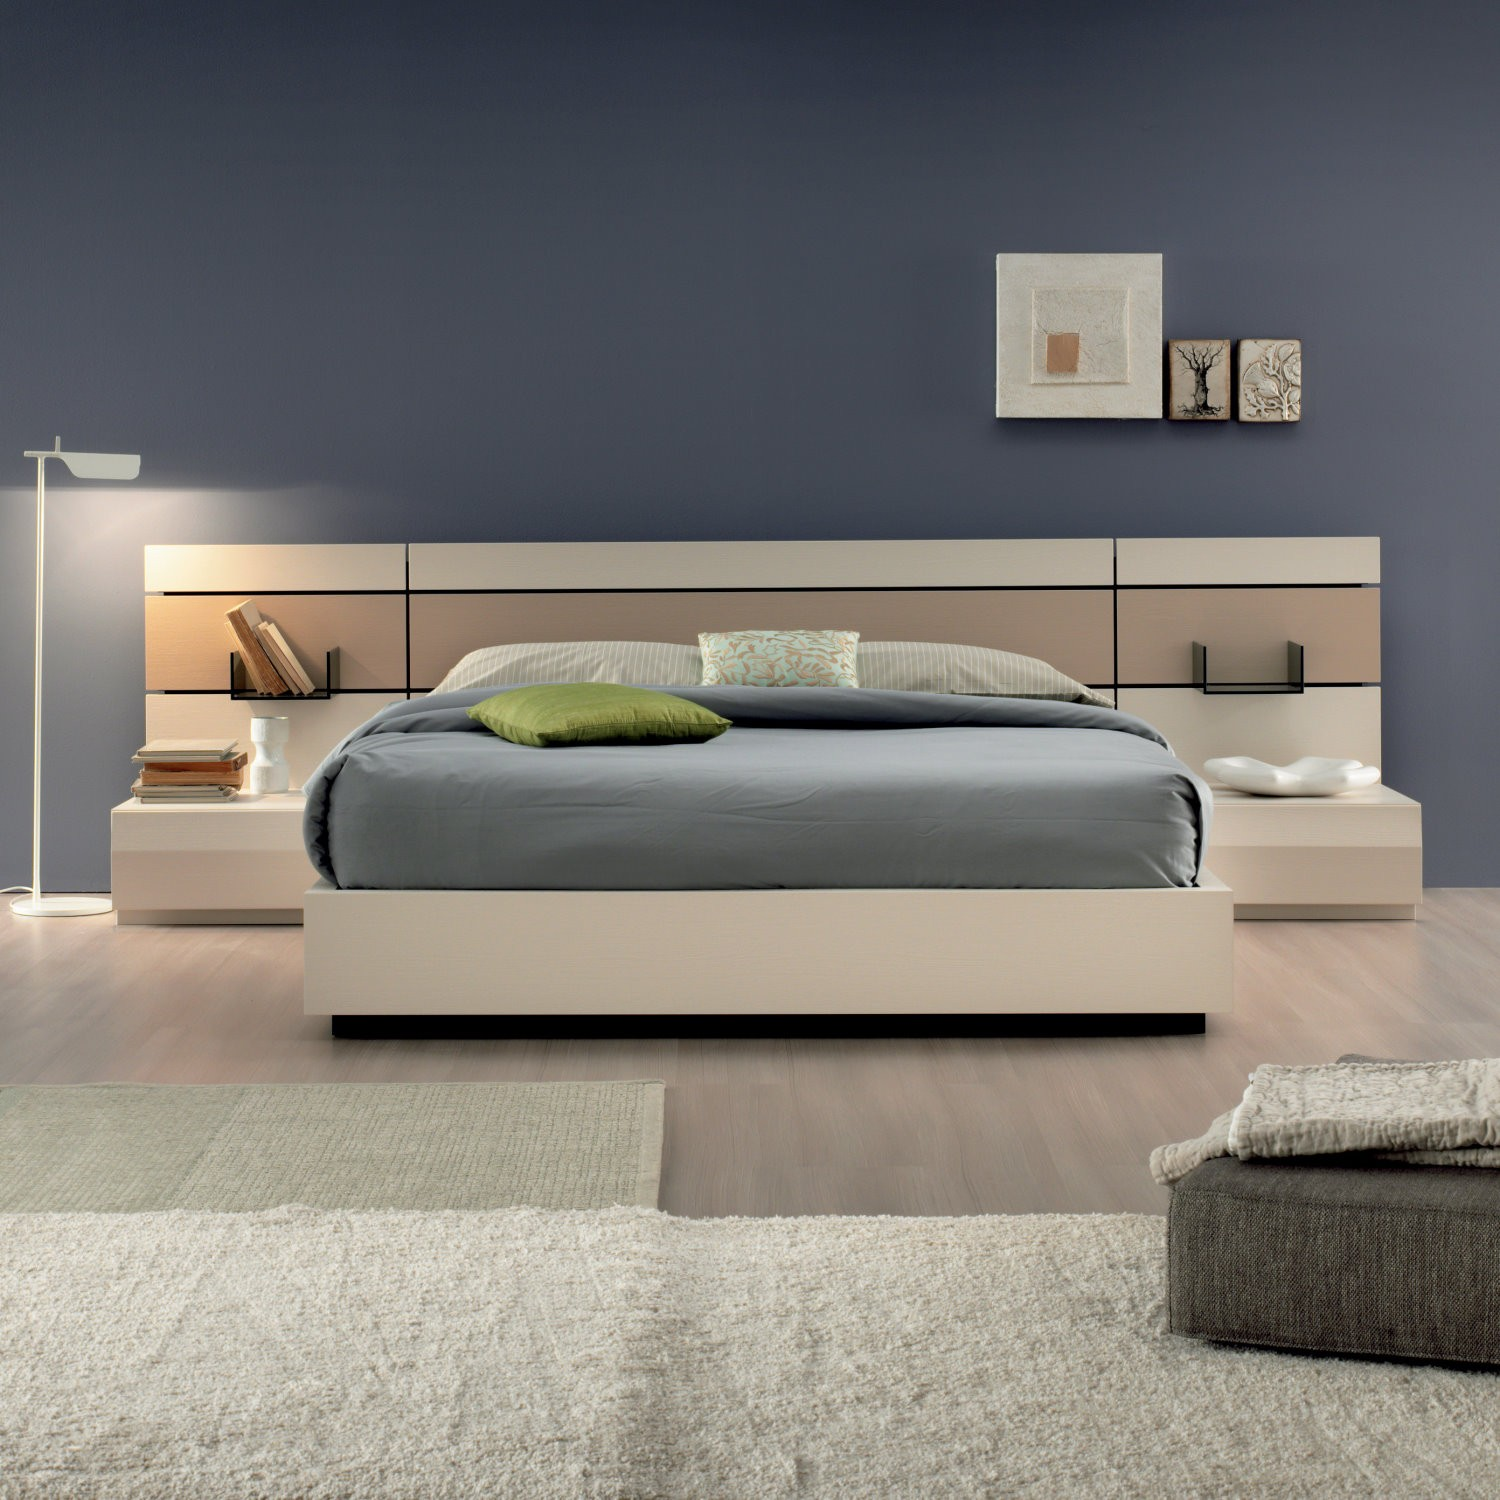 Libreria muro for Spalliere letto ikea